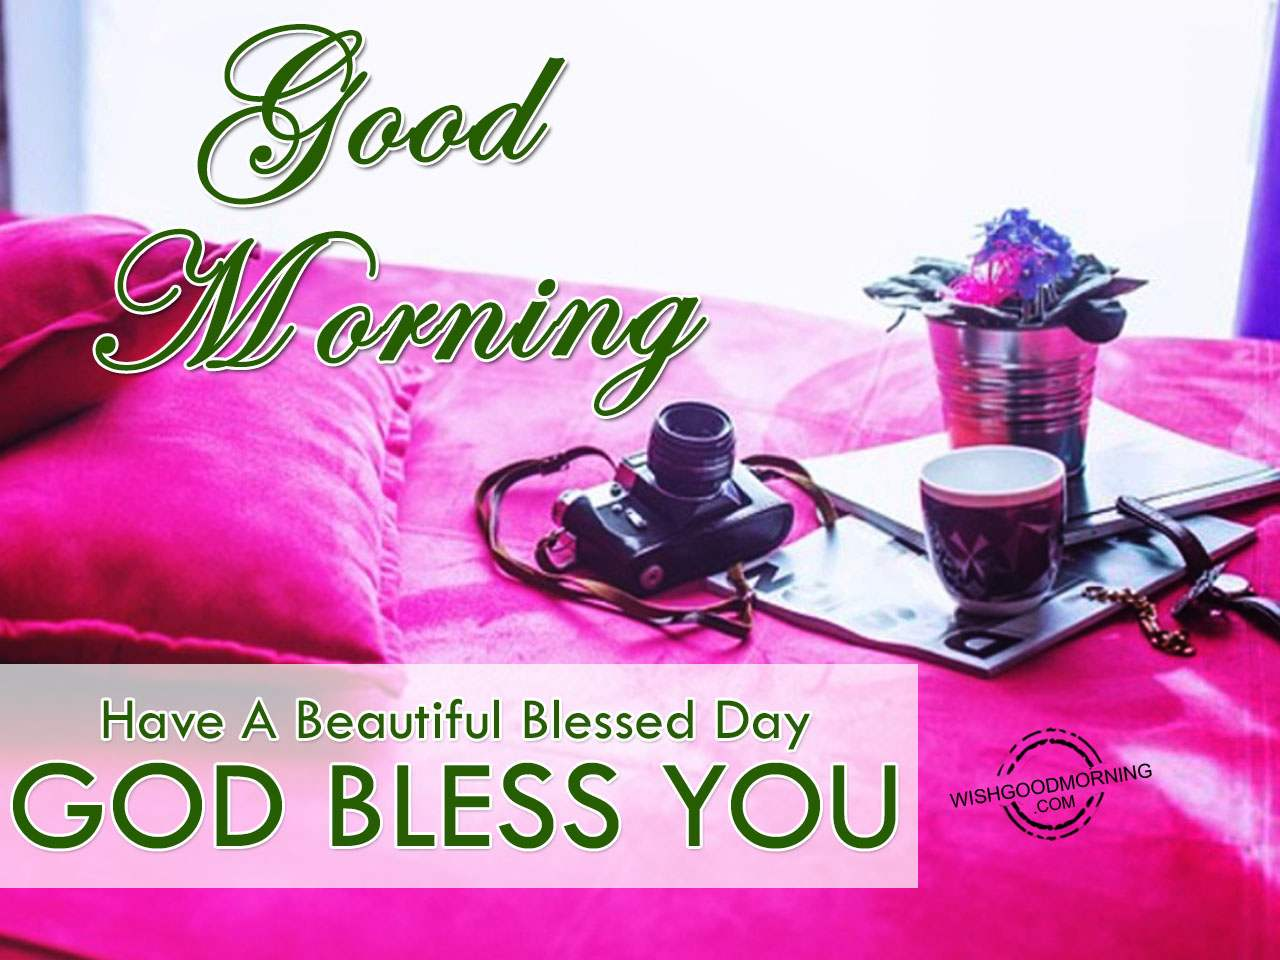 Good Morning Wishes Good Morning Pictures Wishgoodmorningcom